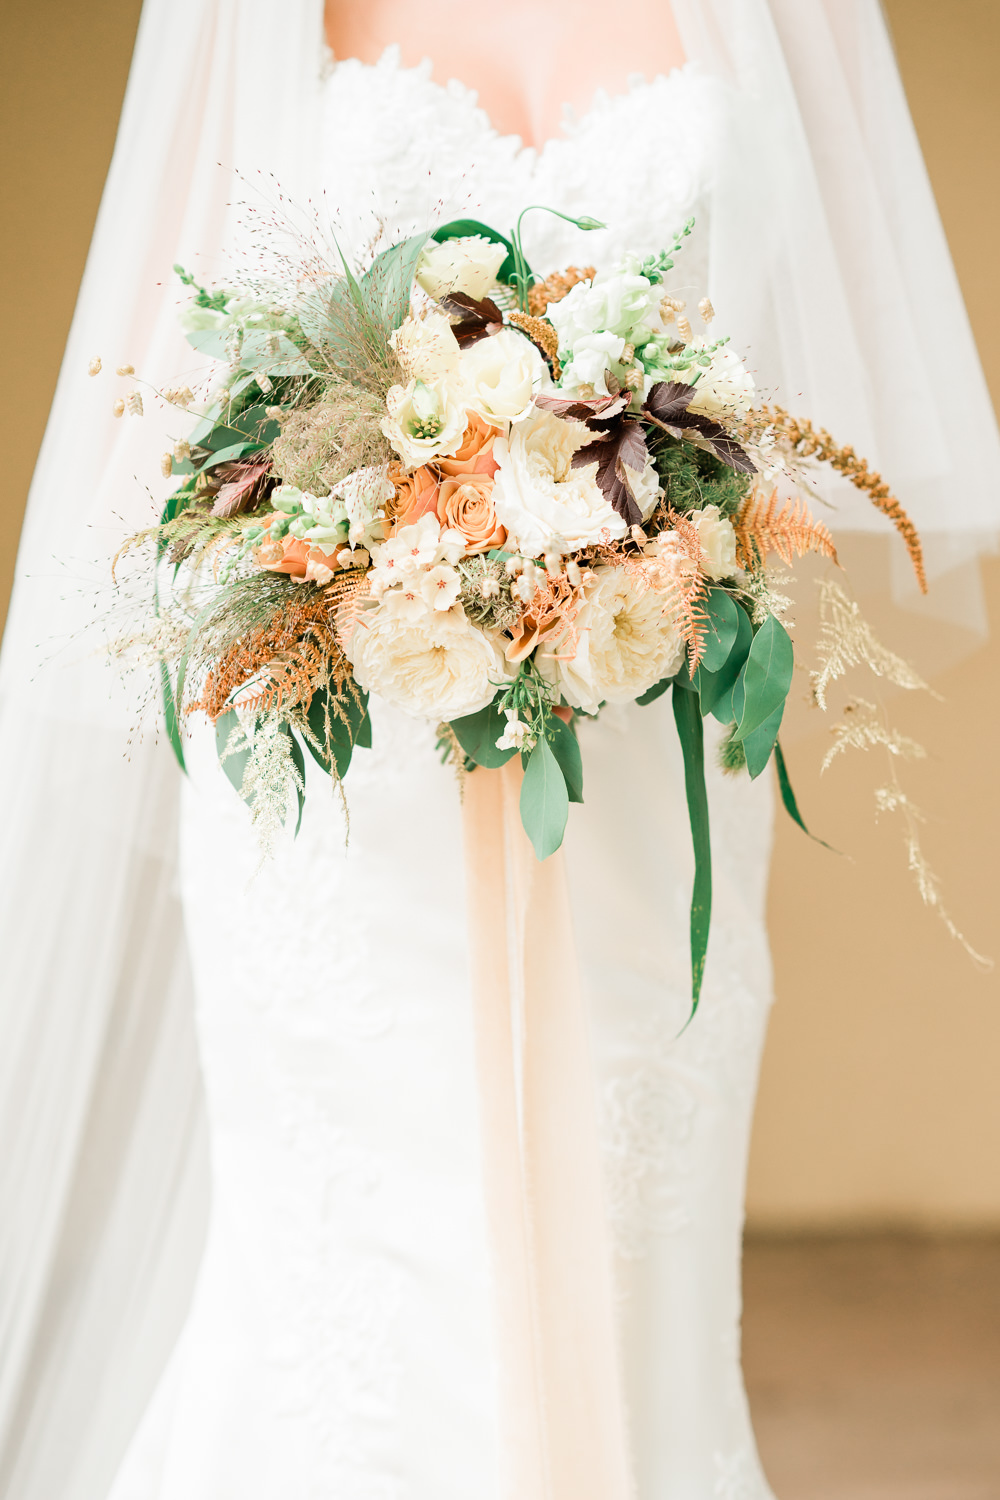 Ribbbons Bouquet Flowers Bride Bridal Millets Quaking Grass Briza Fountain Bracken Asparagus Fern David Austin Rose Phlox Amaranthus Eucalyptus Physocarpus Blush Apricot Cream Golden Autumnal Wedding Ideas Joanna Briggs Photography